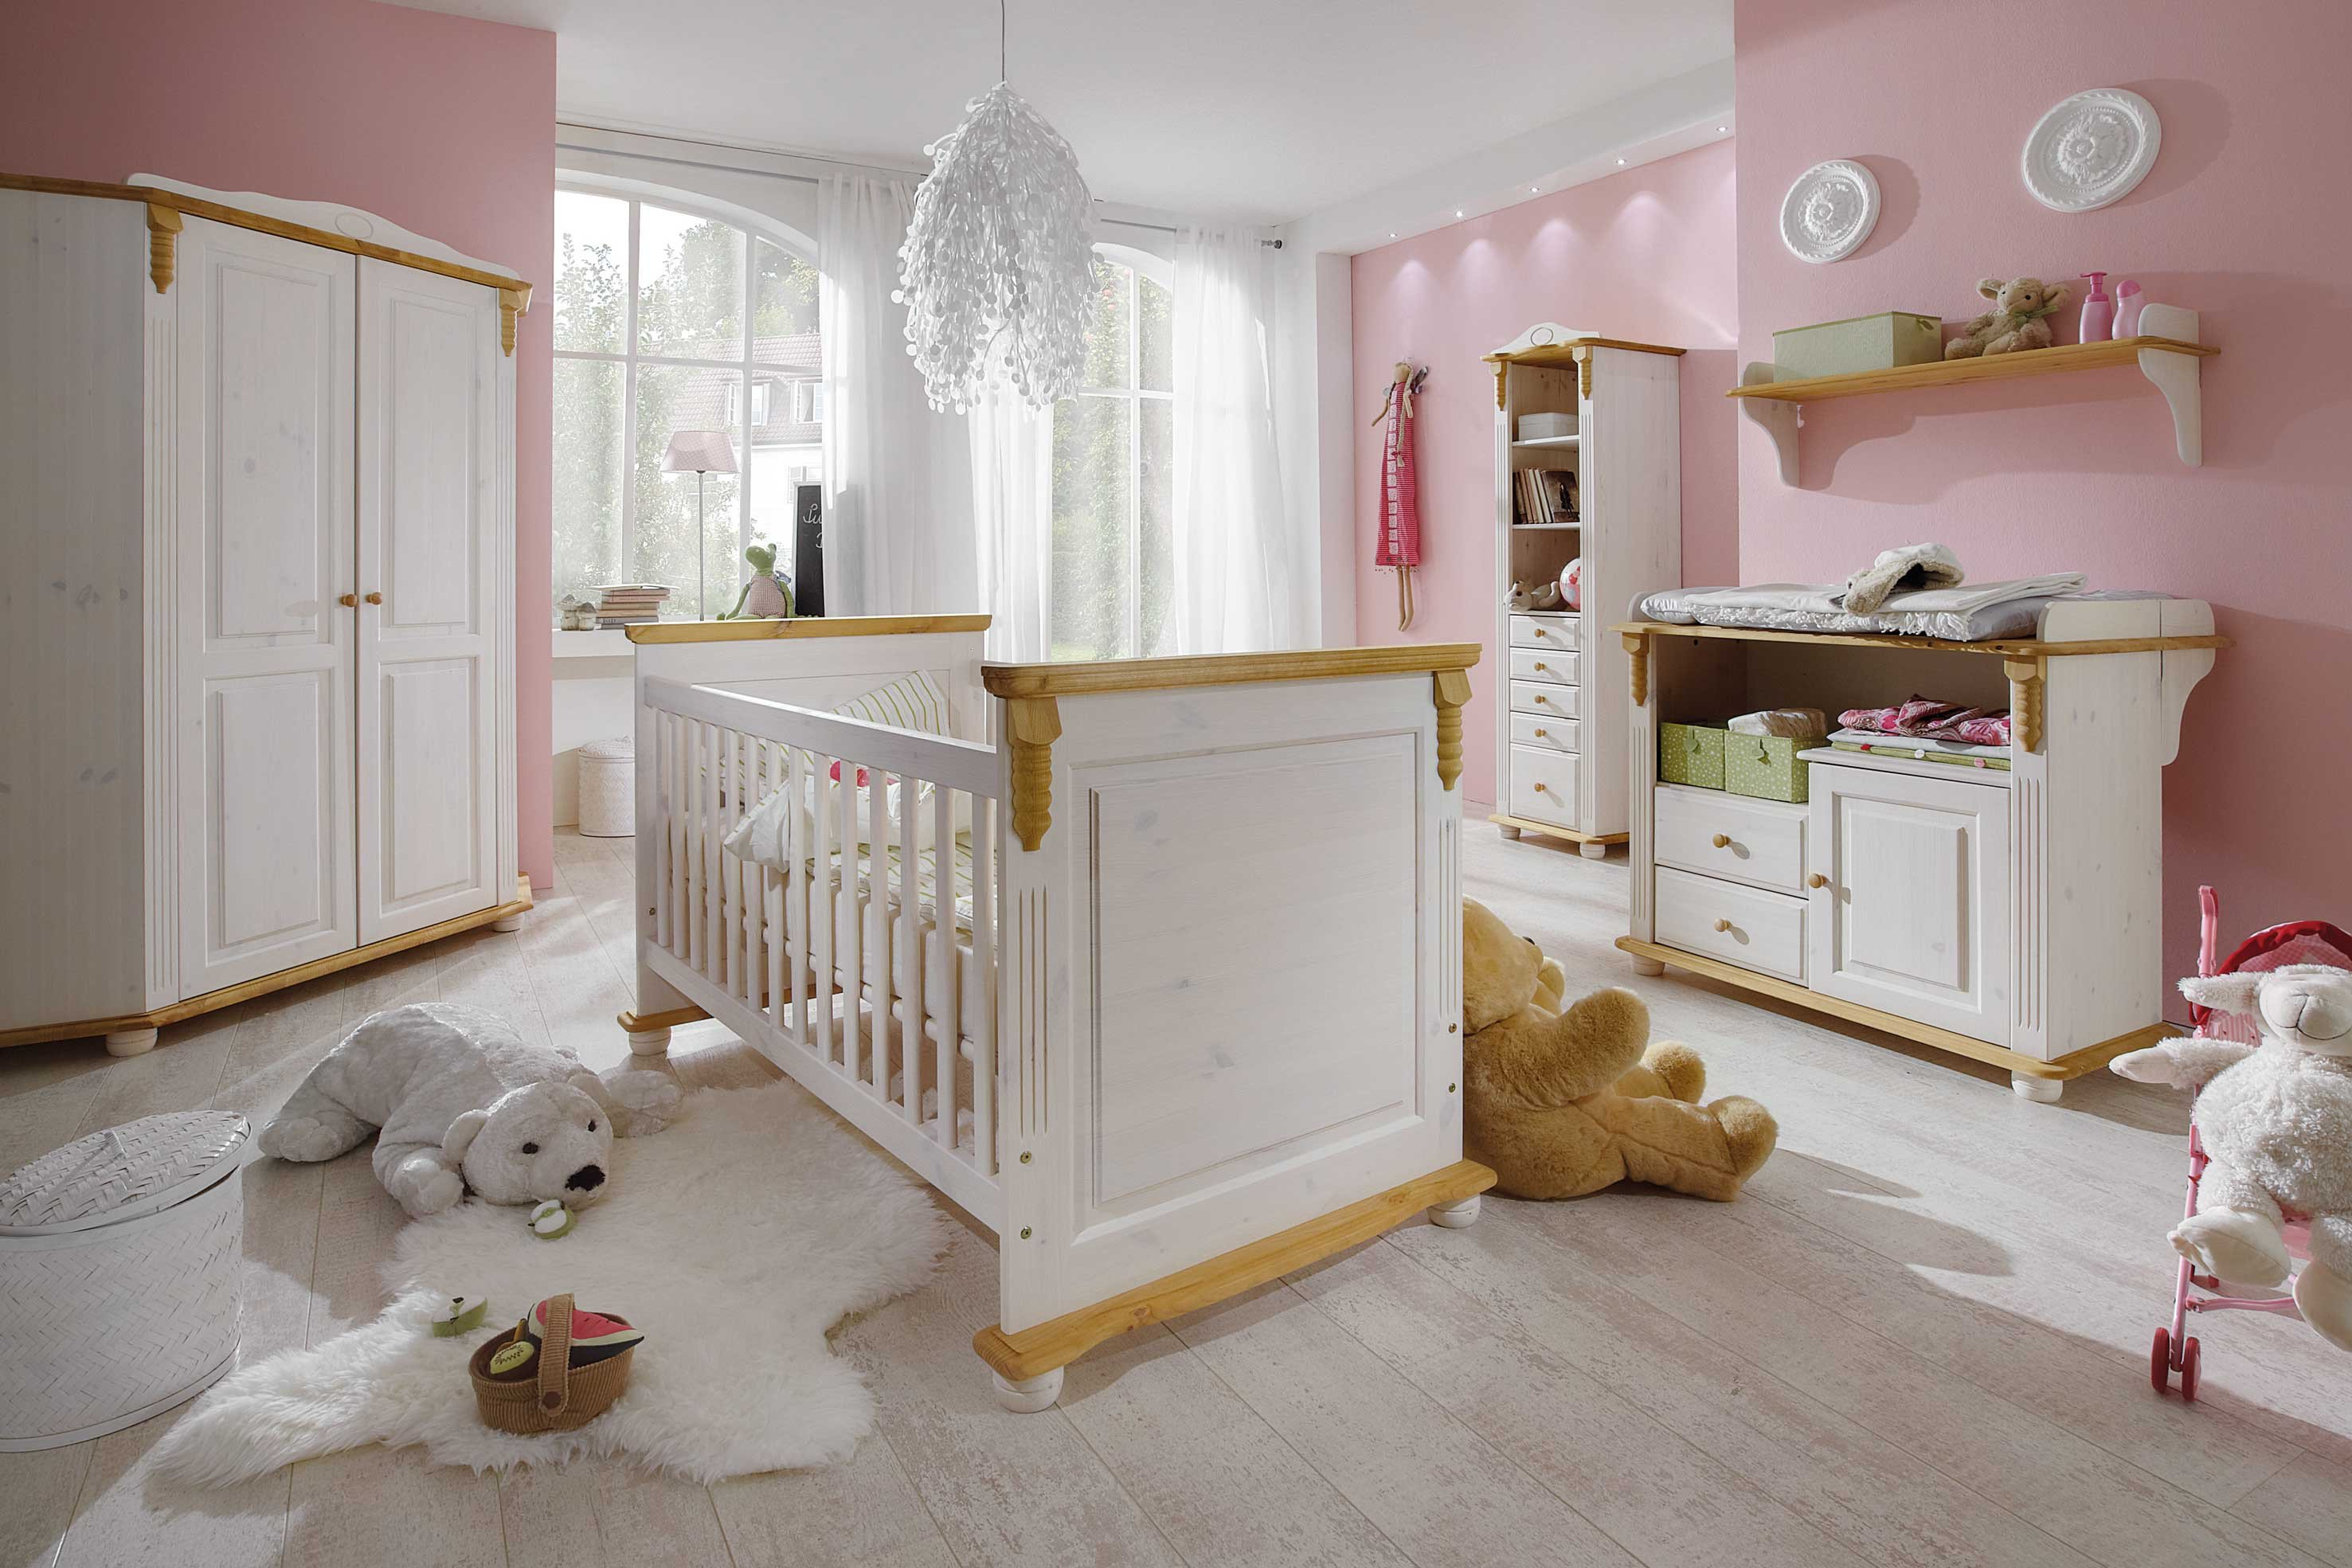 infanskids romantik babyzimmer kiefer wei laugenfarbig m bel letz ihr online shop. Black Bedroom Furniture Sets. Home Design Ideas